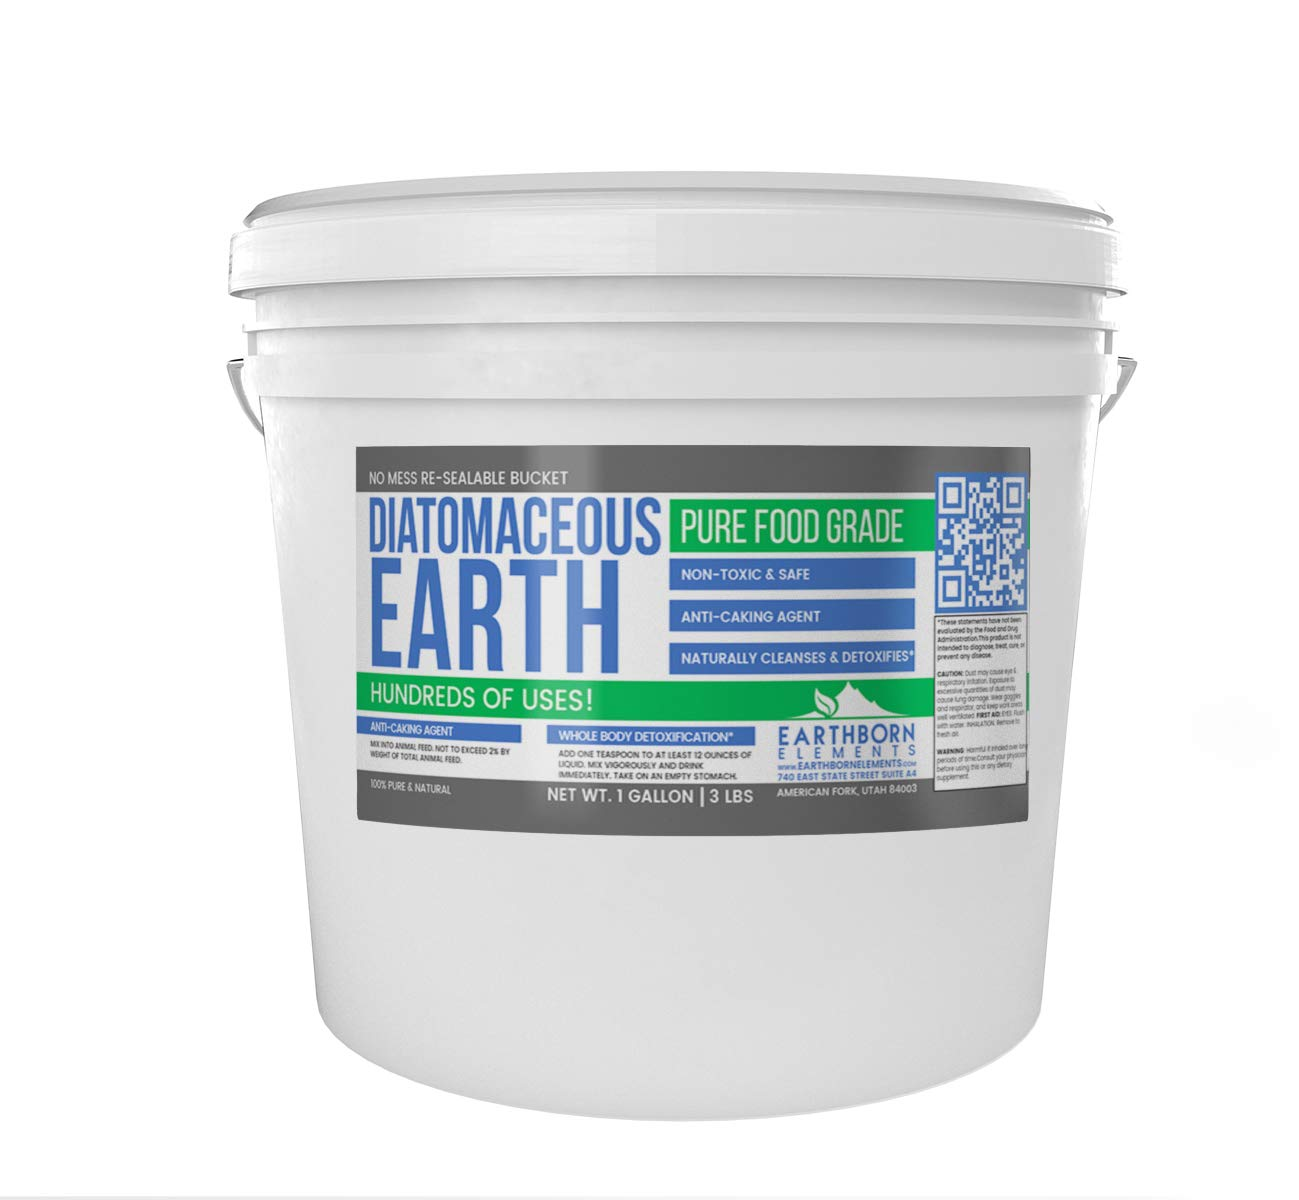 Diatomaceous Earth (1 Gallon (3 Lbs.)) by Earthborn Elements, Resealable Bucket, Highest Quality, FCC Food Grade, 100% Pure Freshwater Amorphous Silica